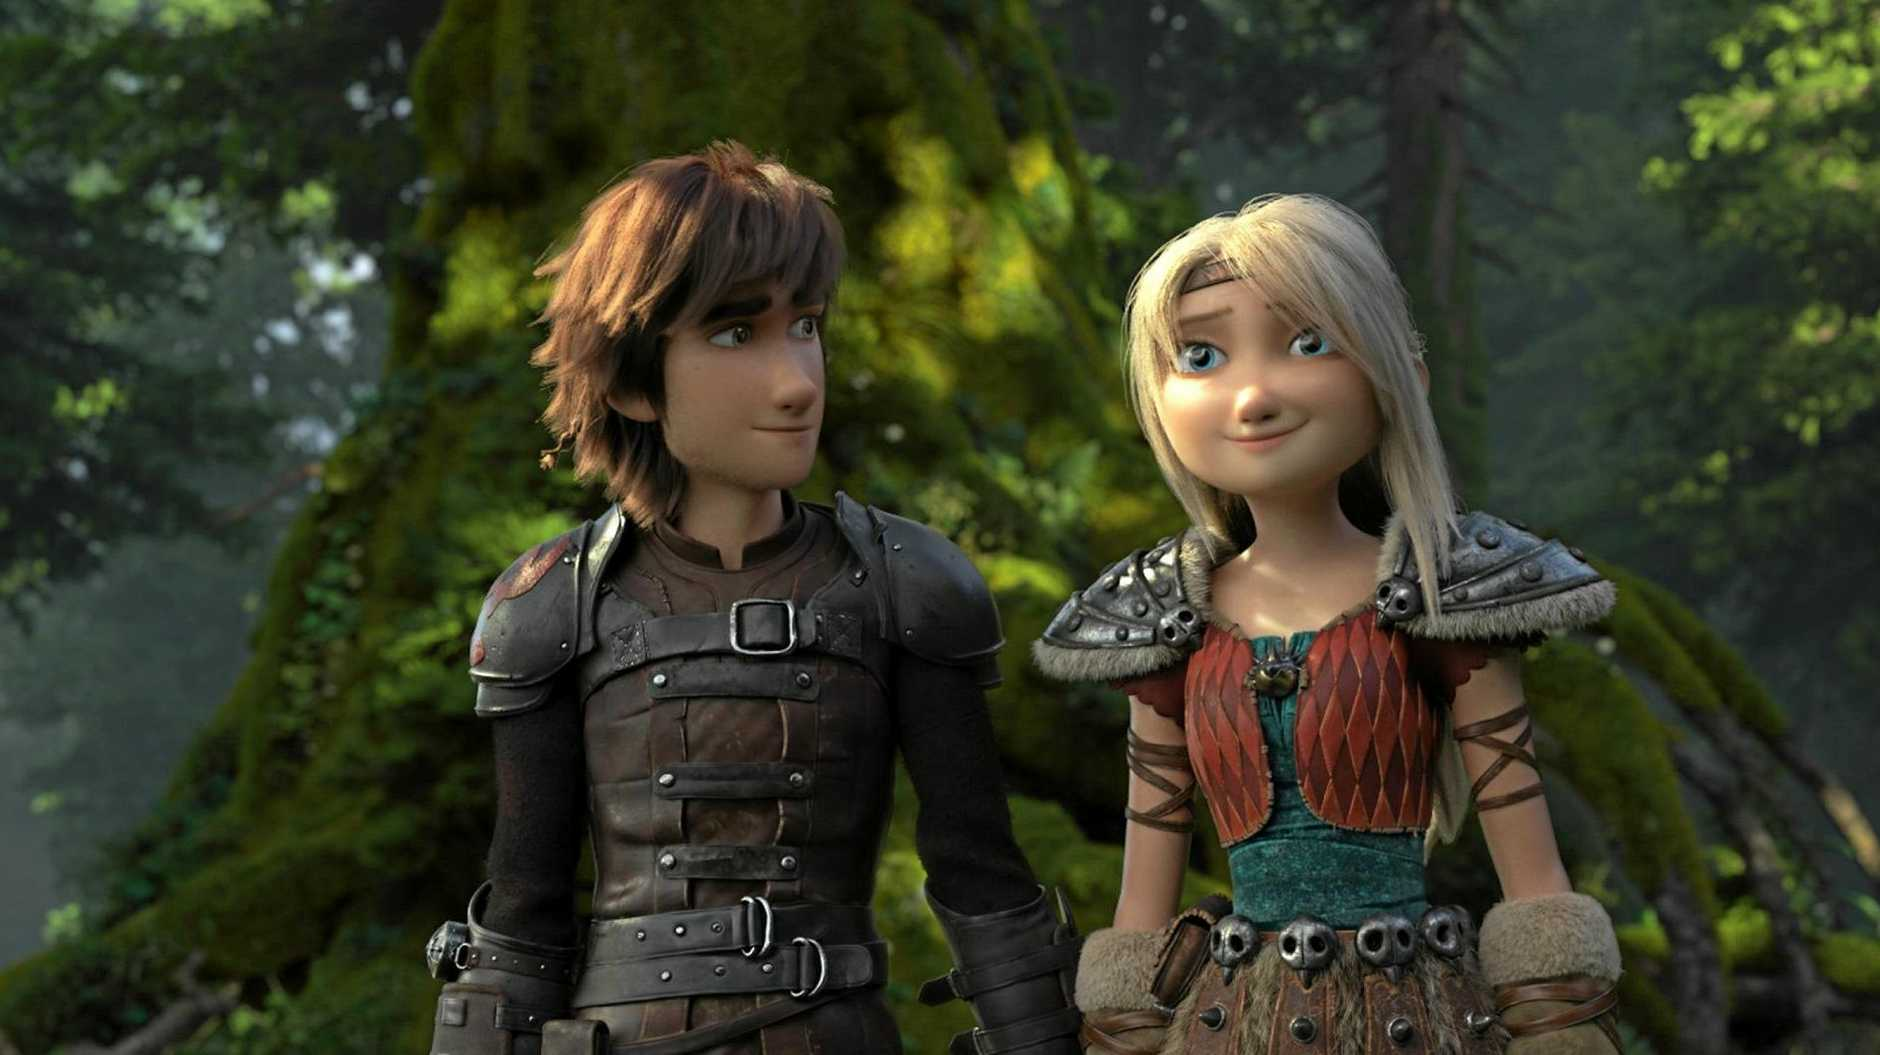 Hiccup and Astrid in scene from the movie How To Train Your Dragon: The Hidden World.